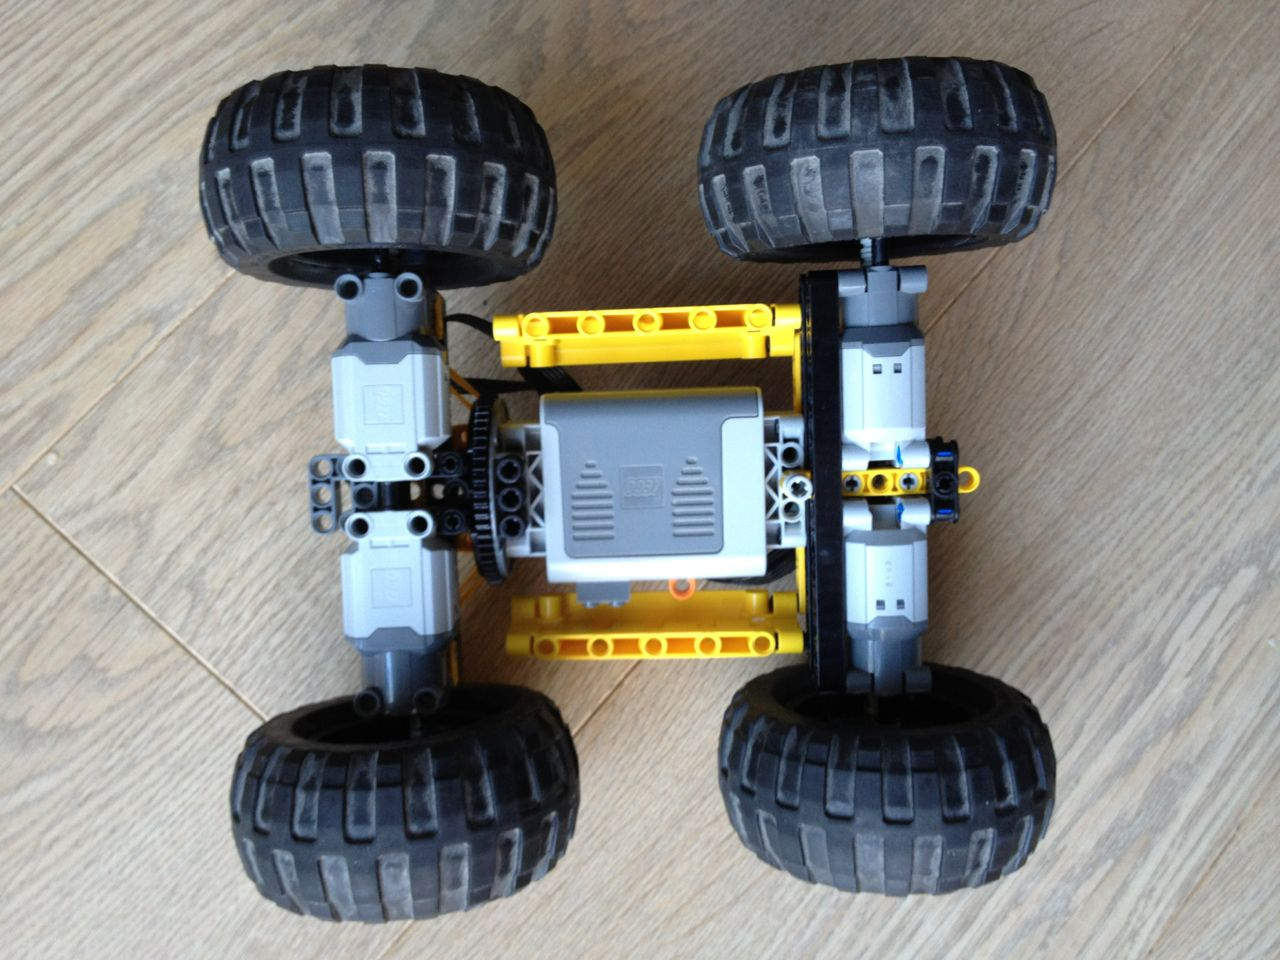 Building An Off Road Car With Lego Technic Christoph Bartneck Phd Very Simple Radio Control R C Final